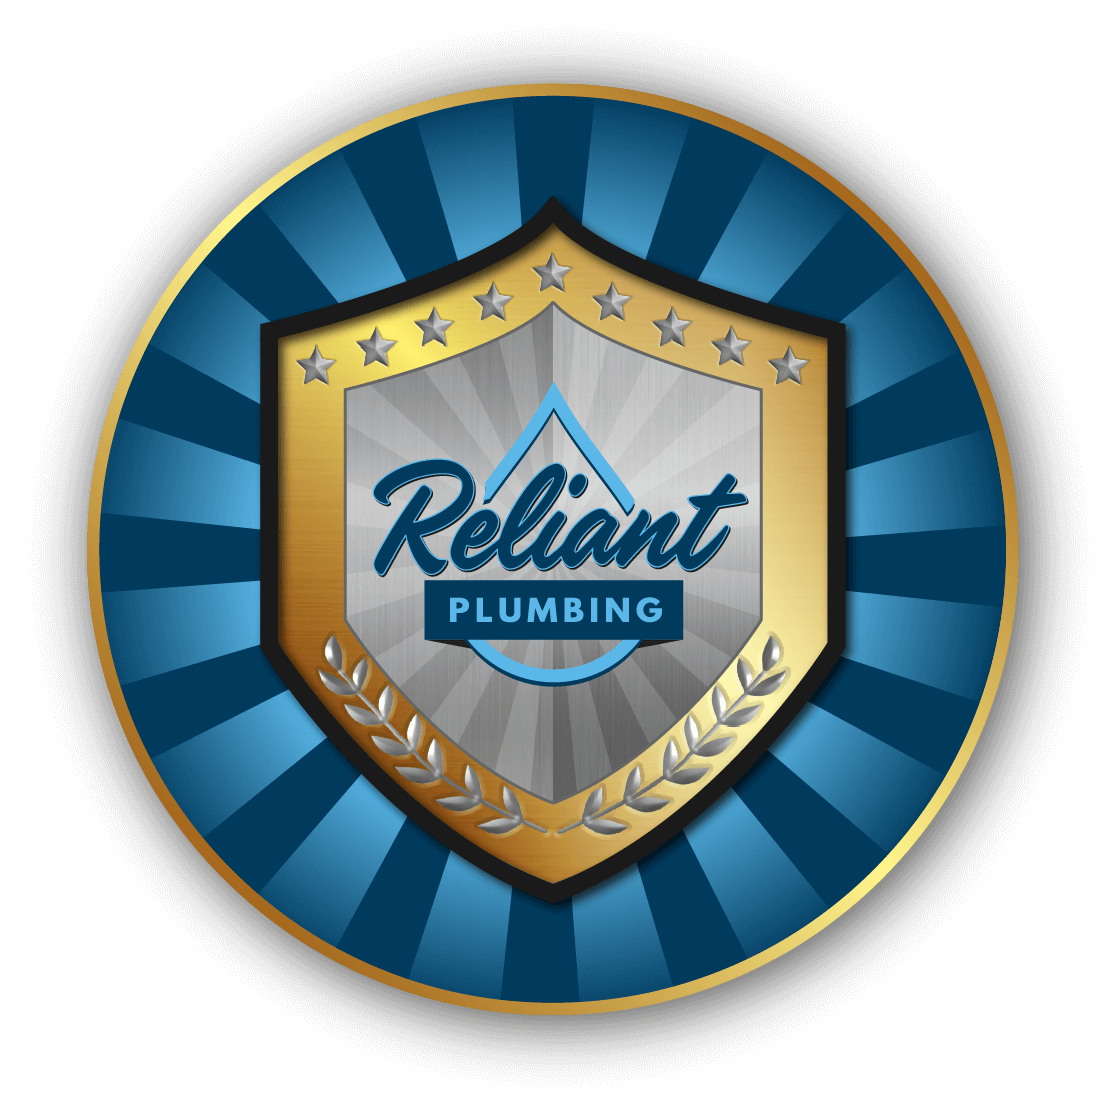 Reliant Plumbing - Lakeway Office